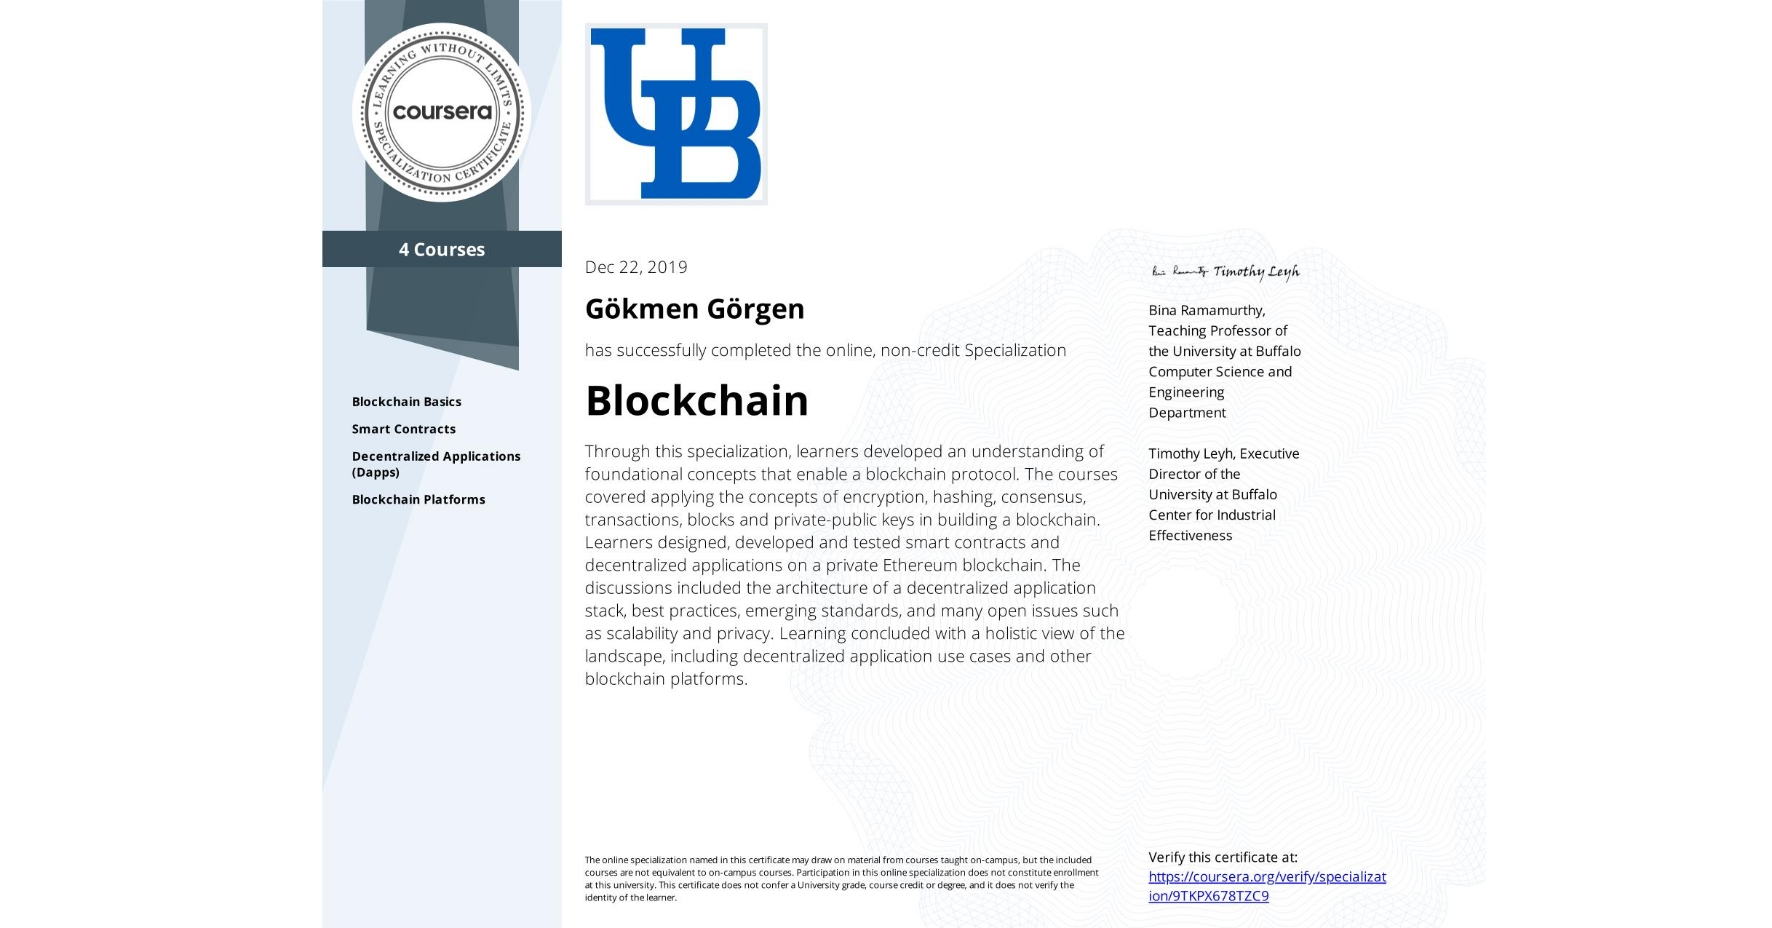 View certificate for Gökmen Görgen, Blockchain, offered through Coursera. Through this specialization, learners developed an understanding of foundational concepts that enable a blockchain protocol. The courses covered applying the concepts of encryption, hashing, consensus, transactions, blocks and private-public keys in building a blockchain. Learners designed, developed and tested smart contracts and decentralized applications on a private Ethereum blockchain. The discussions included the architecture of a decentralized application stack, best practices, emerging standards, and many open issues such as scalability and privacy. Learning concluded with a holistic view of the landscape, including decentralized application use cases and other blockchain platforms.